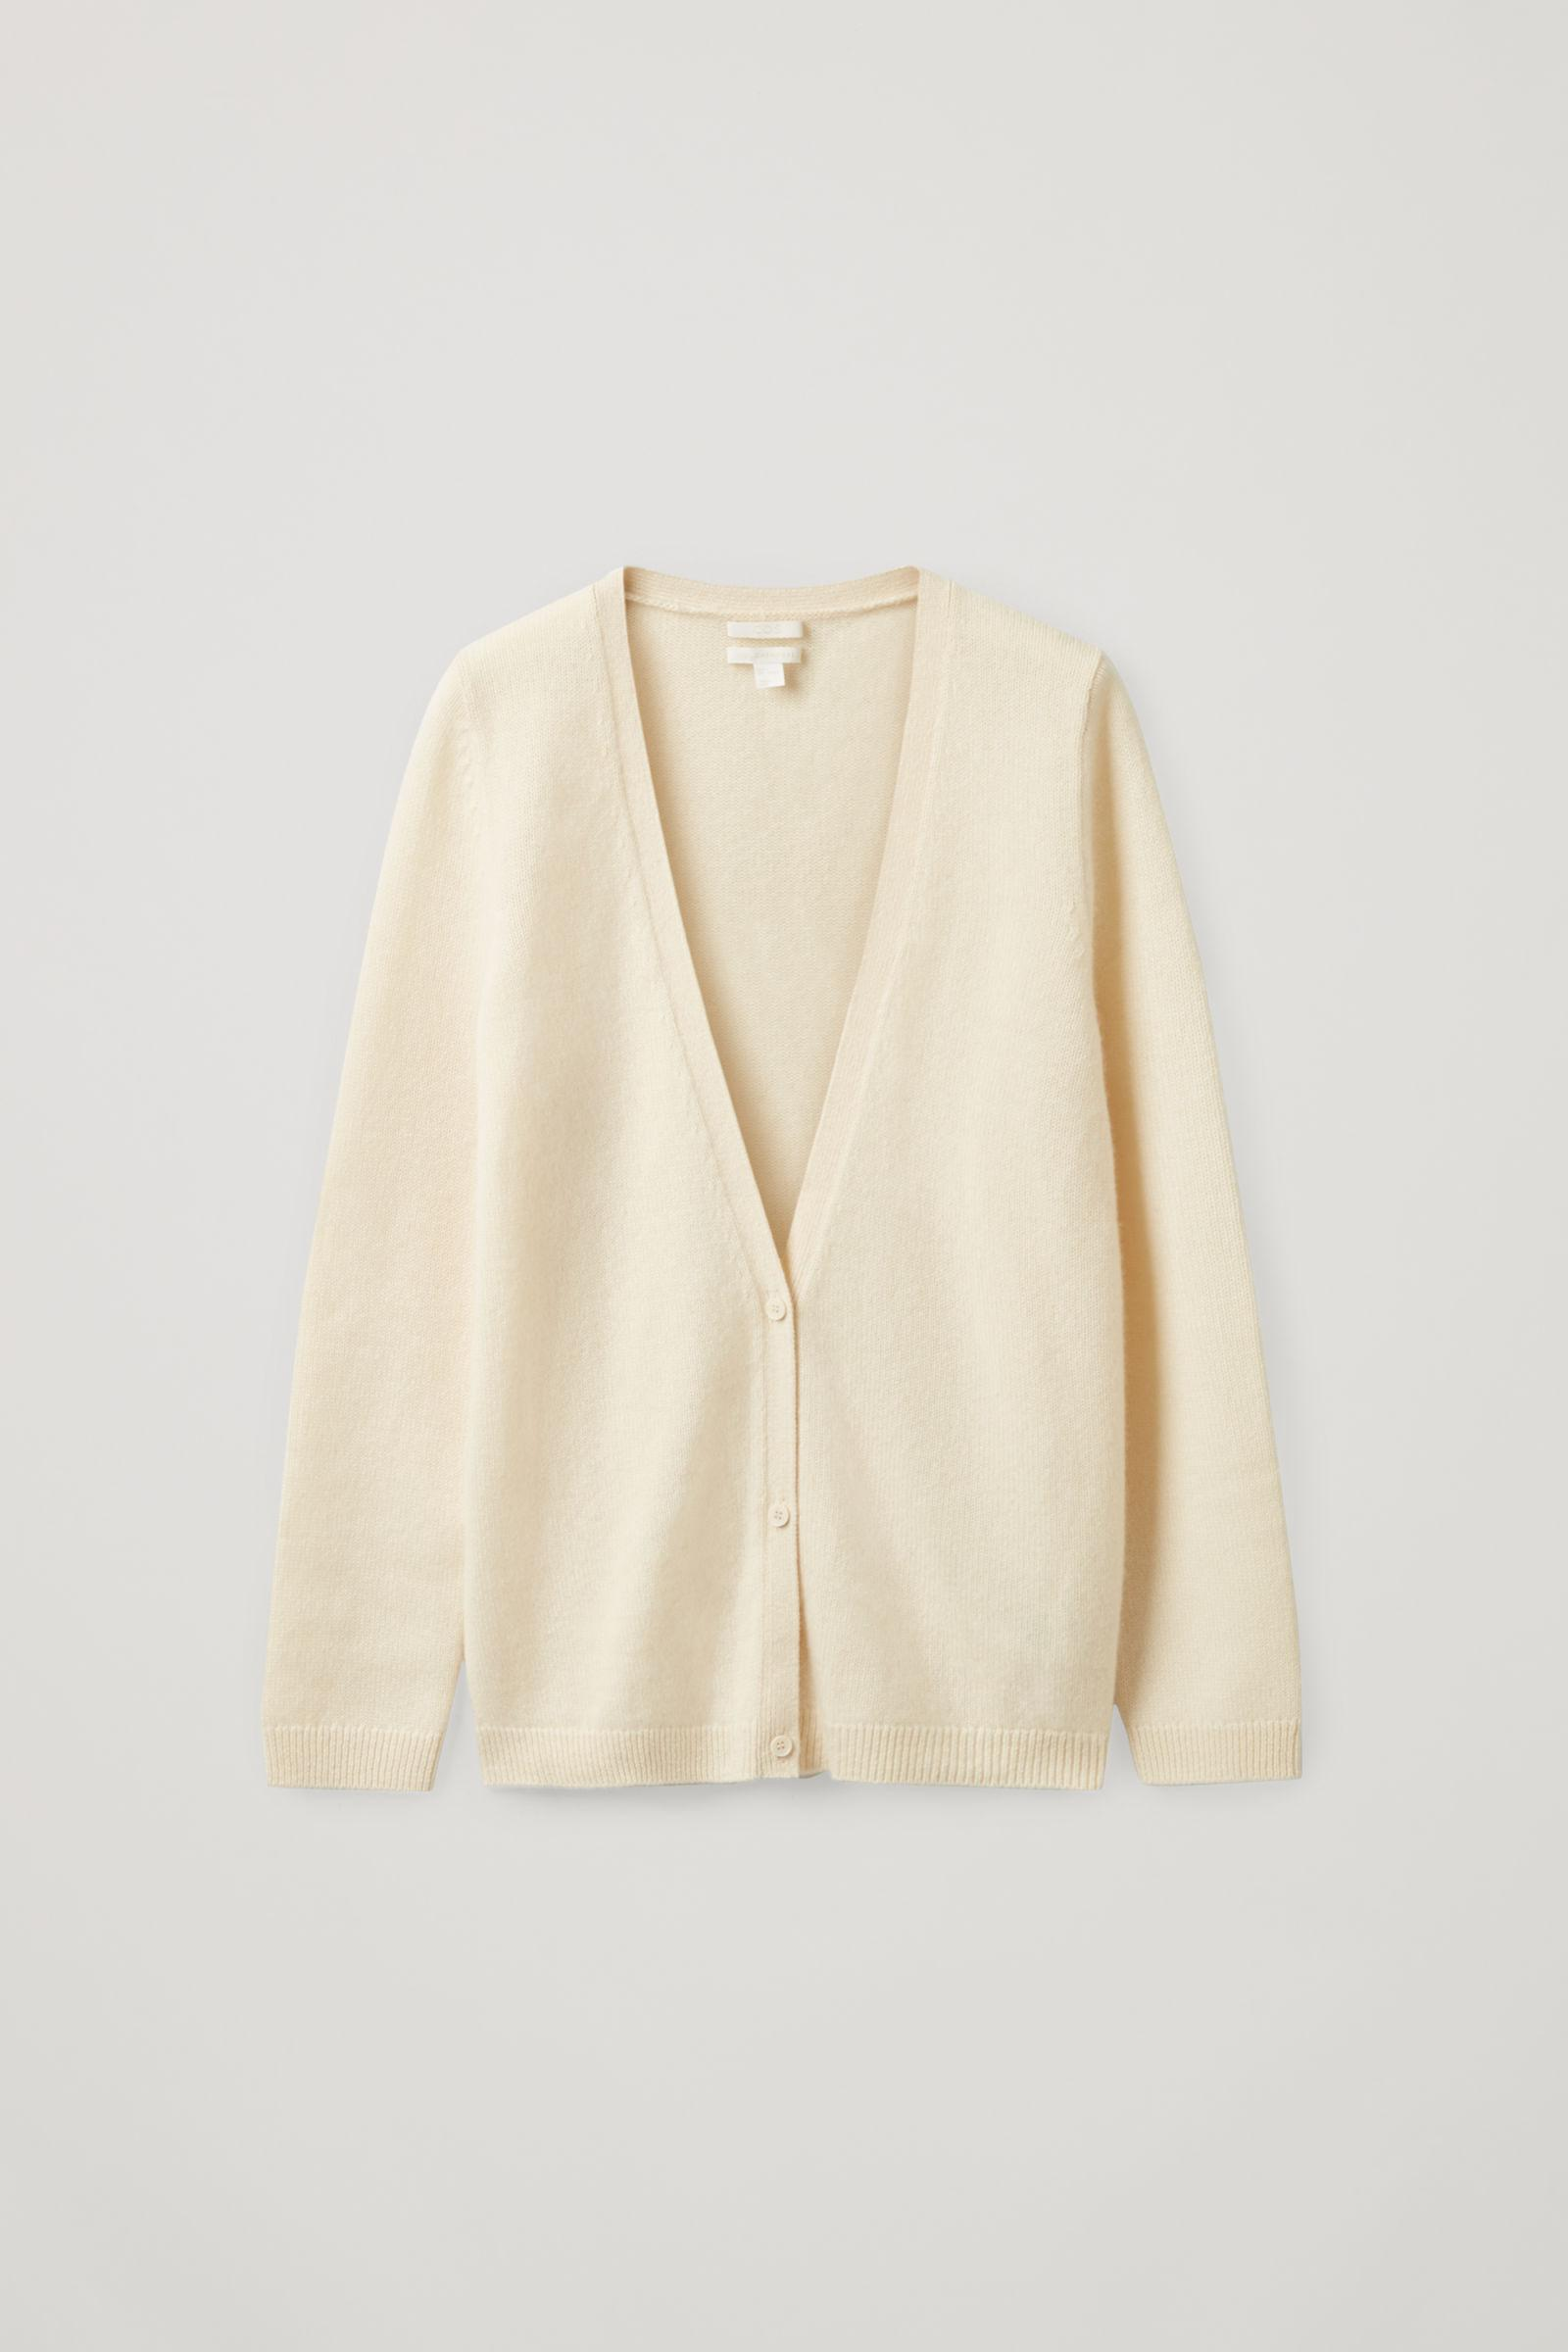 KNITTED CASHMERE CARDIGAN 5